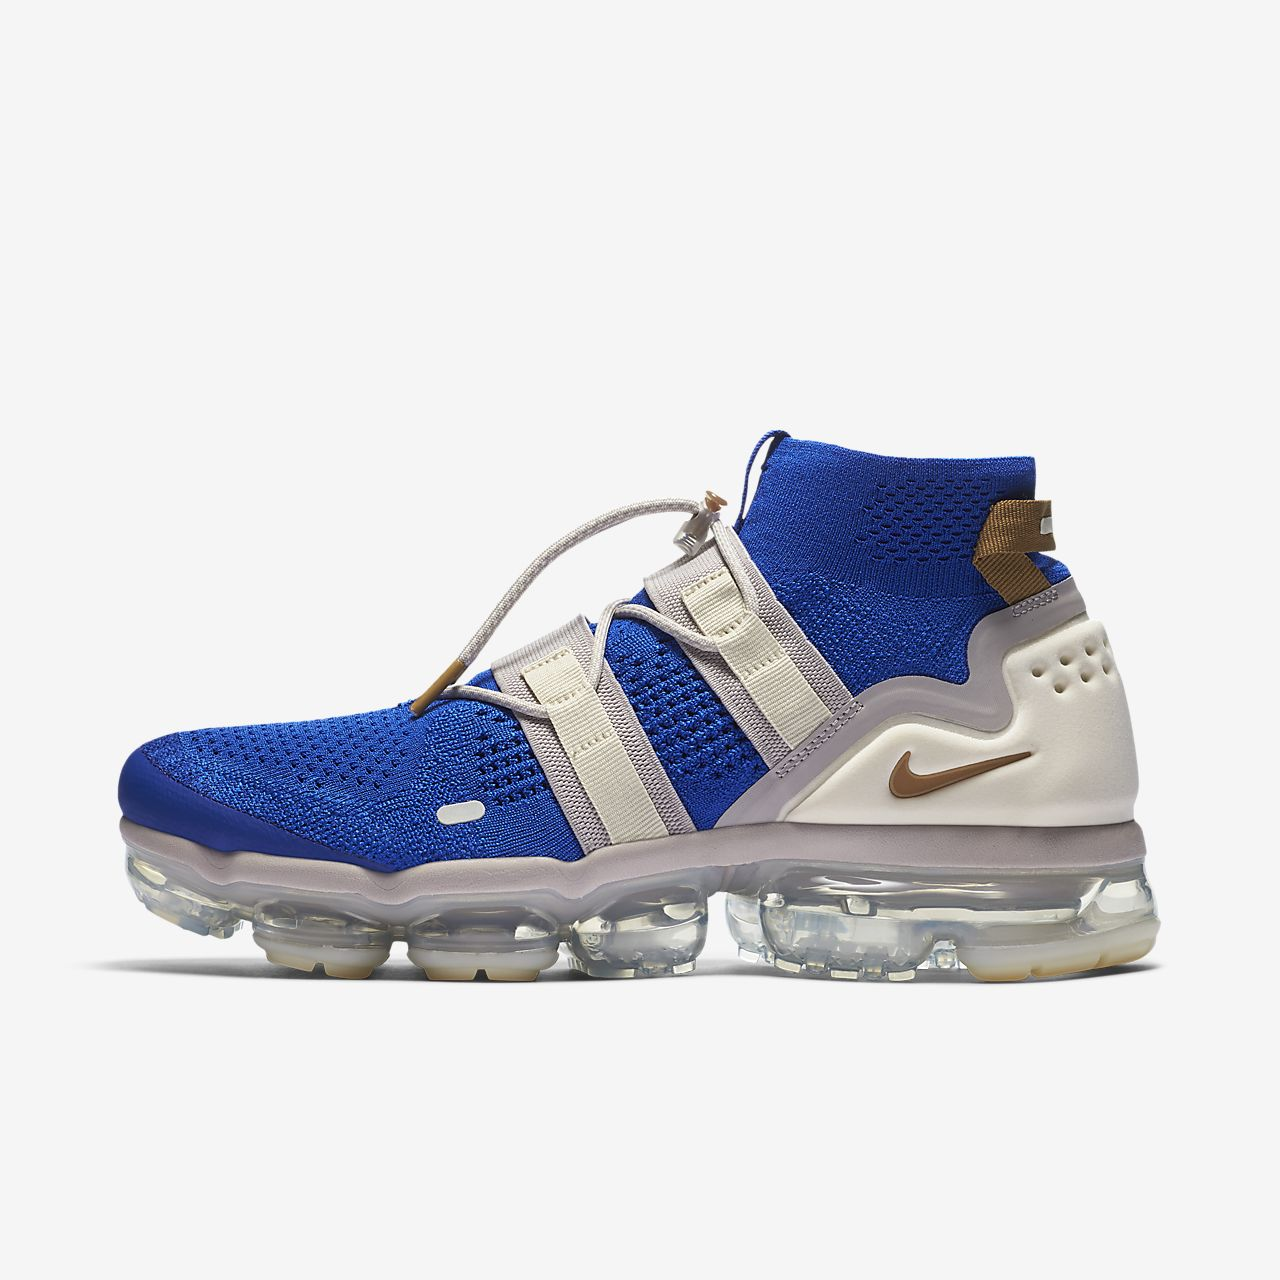 62e7d8caf83 Low Resolution Nike Air VaporMax Flyknit Utility Shoe Nike Air VaporMax  Flyknit Utility Shoe